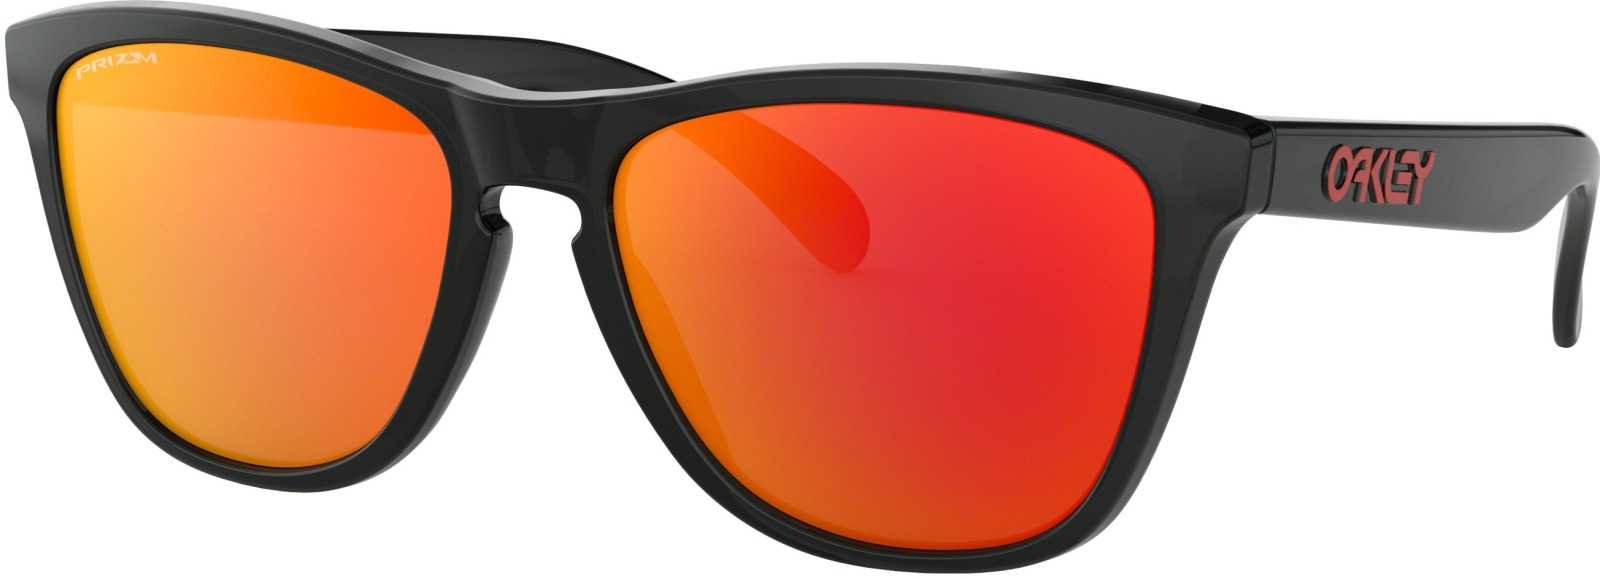 bfb043f894 Oakley Frogskins Prizm Ruby Sunglasses - Eyewear - Cycle SuperStore